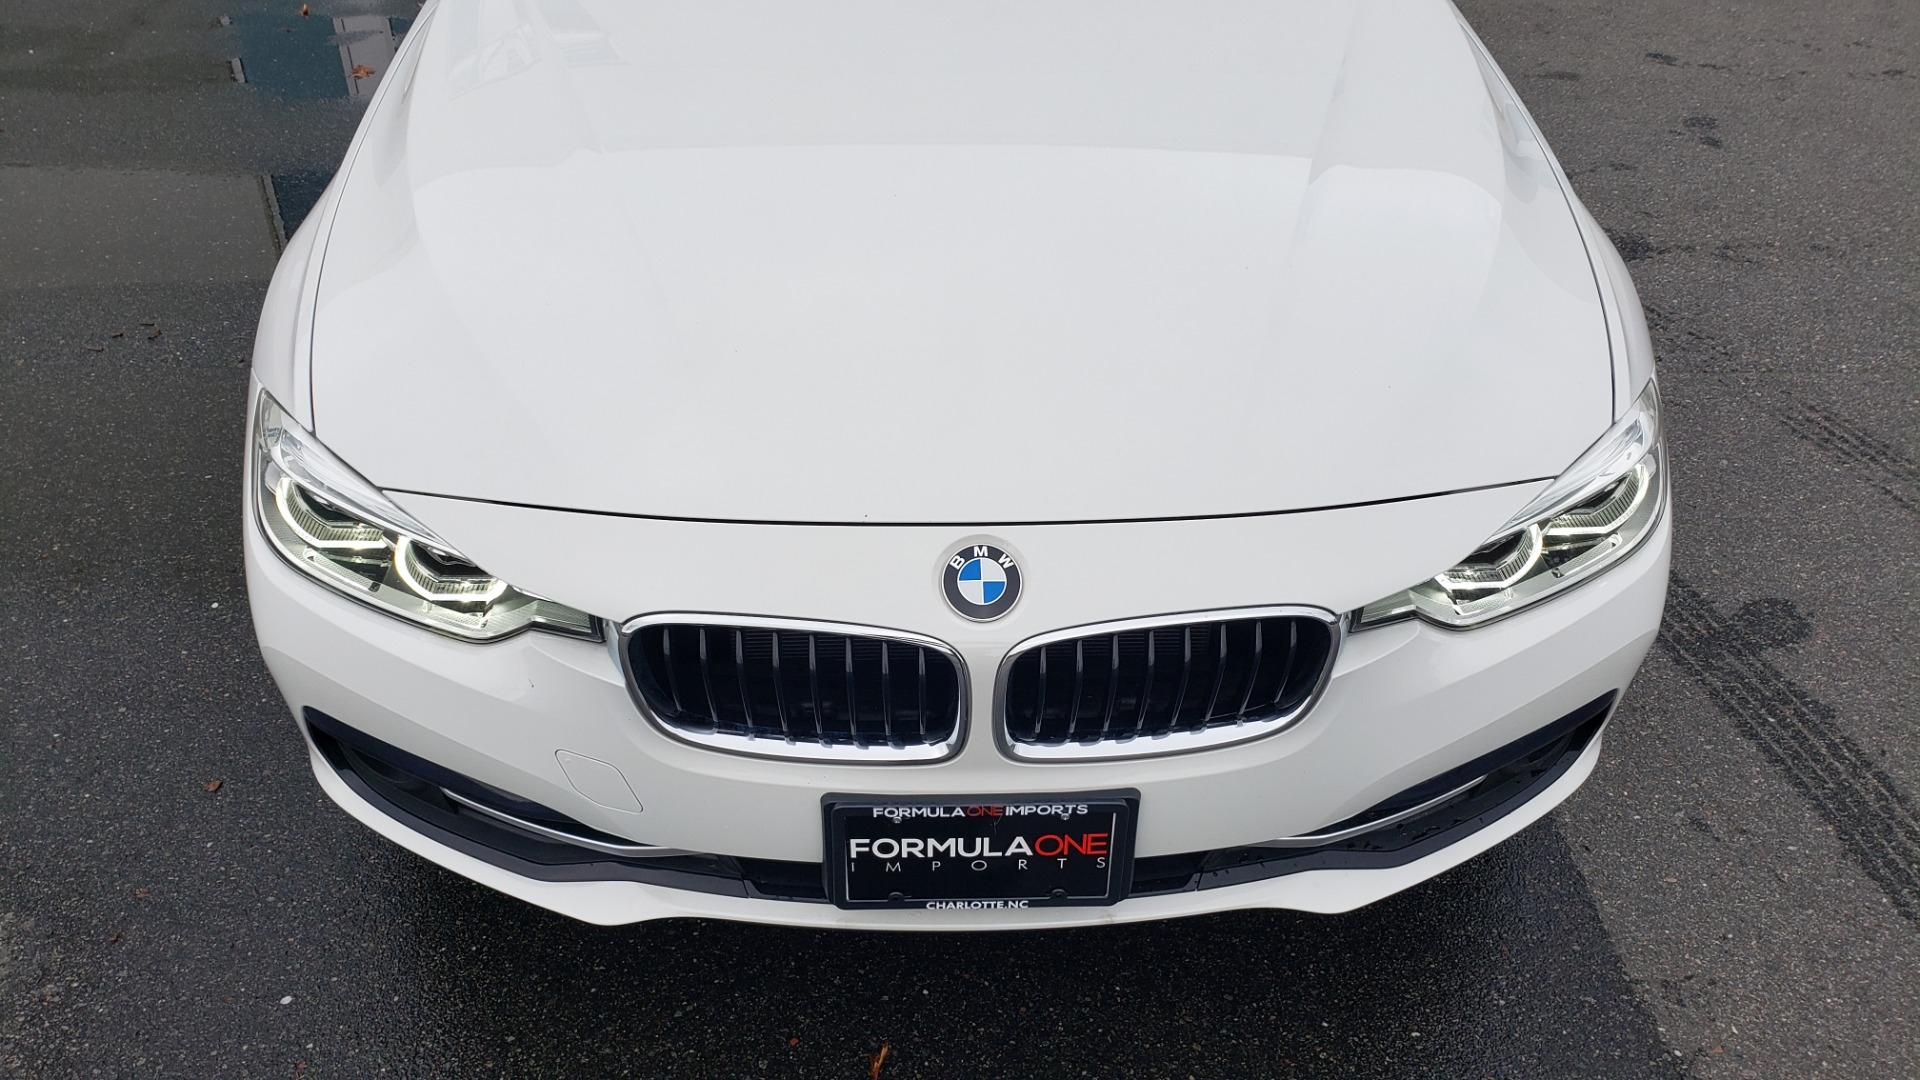 Used 2018 BMW 3 SERIES 330I XDRIVE / CONV PKG / SUNROOF / HTD STS / REARVIEW for sale $24,795 at Formula Imports in Charlotte NC 28227 22